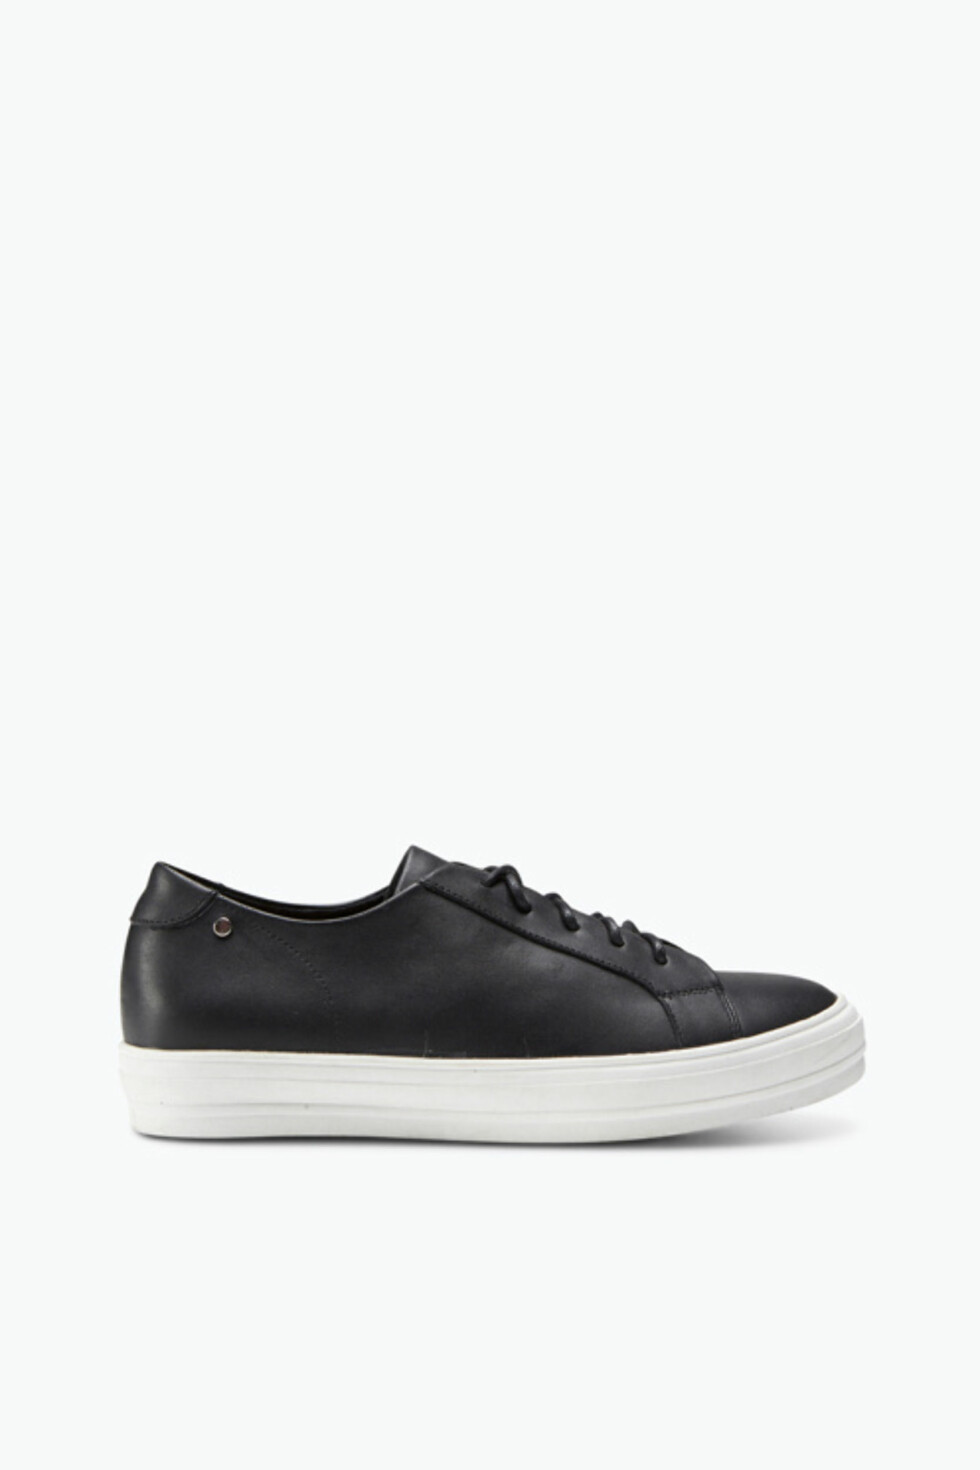 "<strong>Sneakers fra Ellos | kr 649 | <a href=""https:</strong>//track.adtraction.com/t/t?a=1068408670&as=1115634940&t=2&tk=1&url=http://www.ellos.no/ellos-shoes/sneakers-i-skinn/511699?N=1z141puZ1z13xv8Z1z141od&Ns=RankValue5